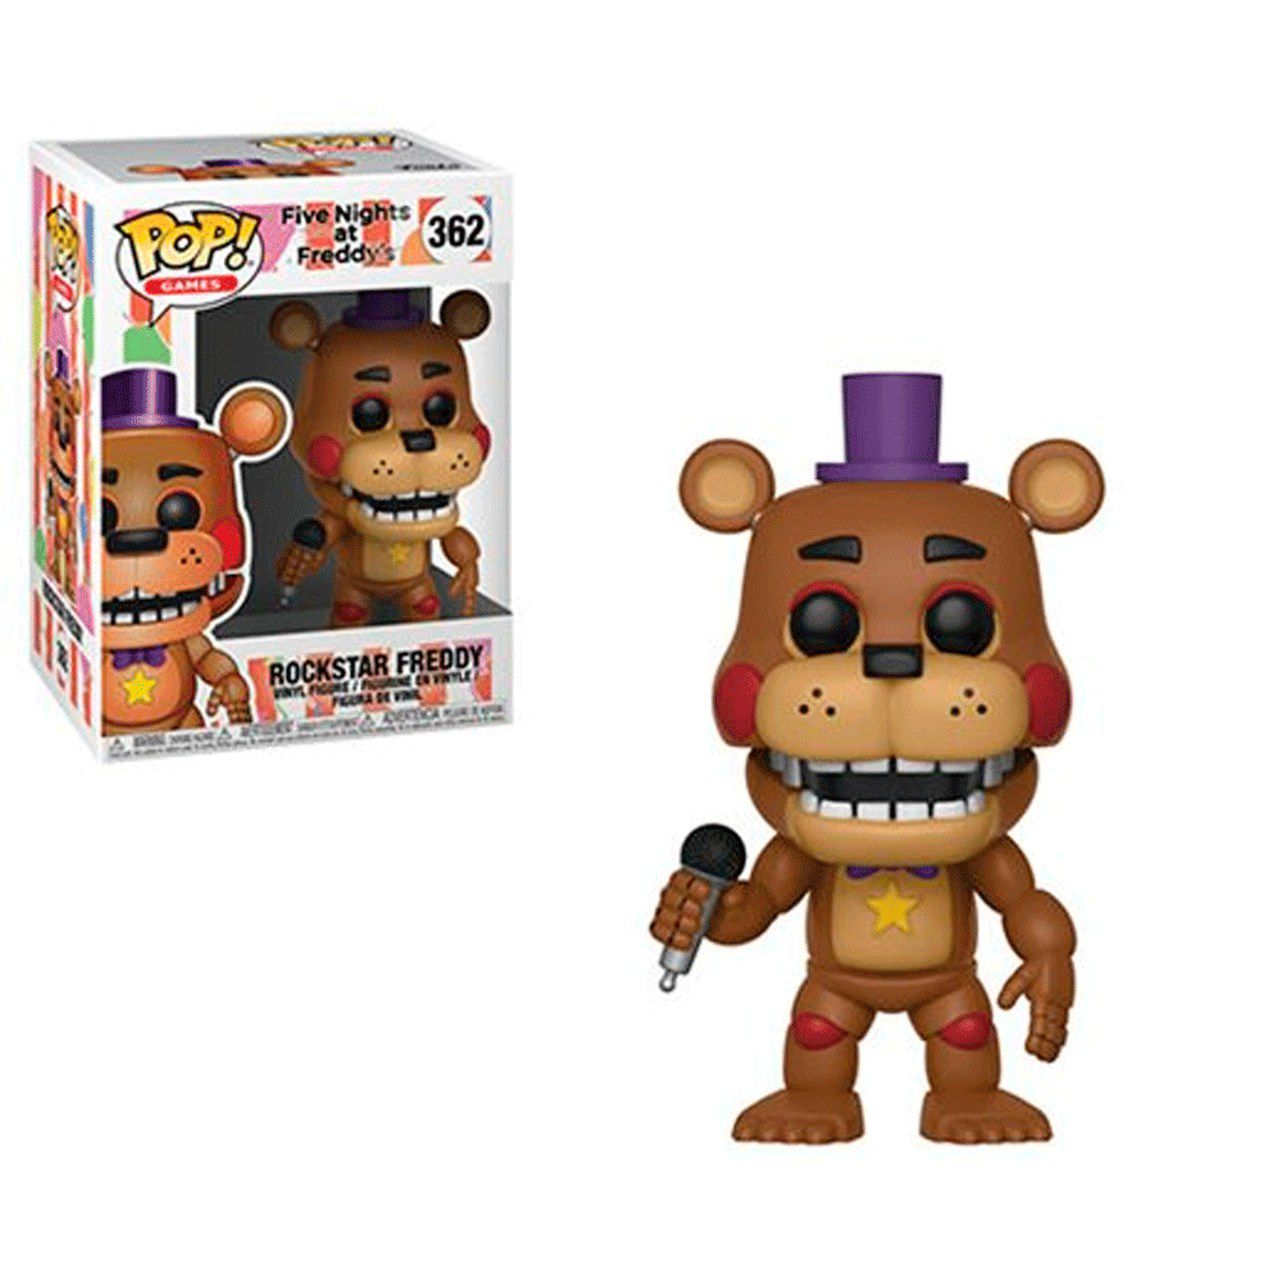 Funko Pop! Rockstar Freddy: Five Nights at Freddy's #362 - Funko